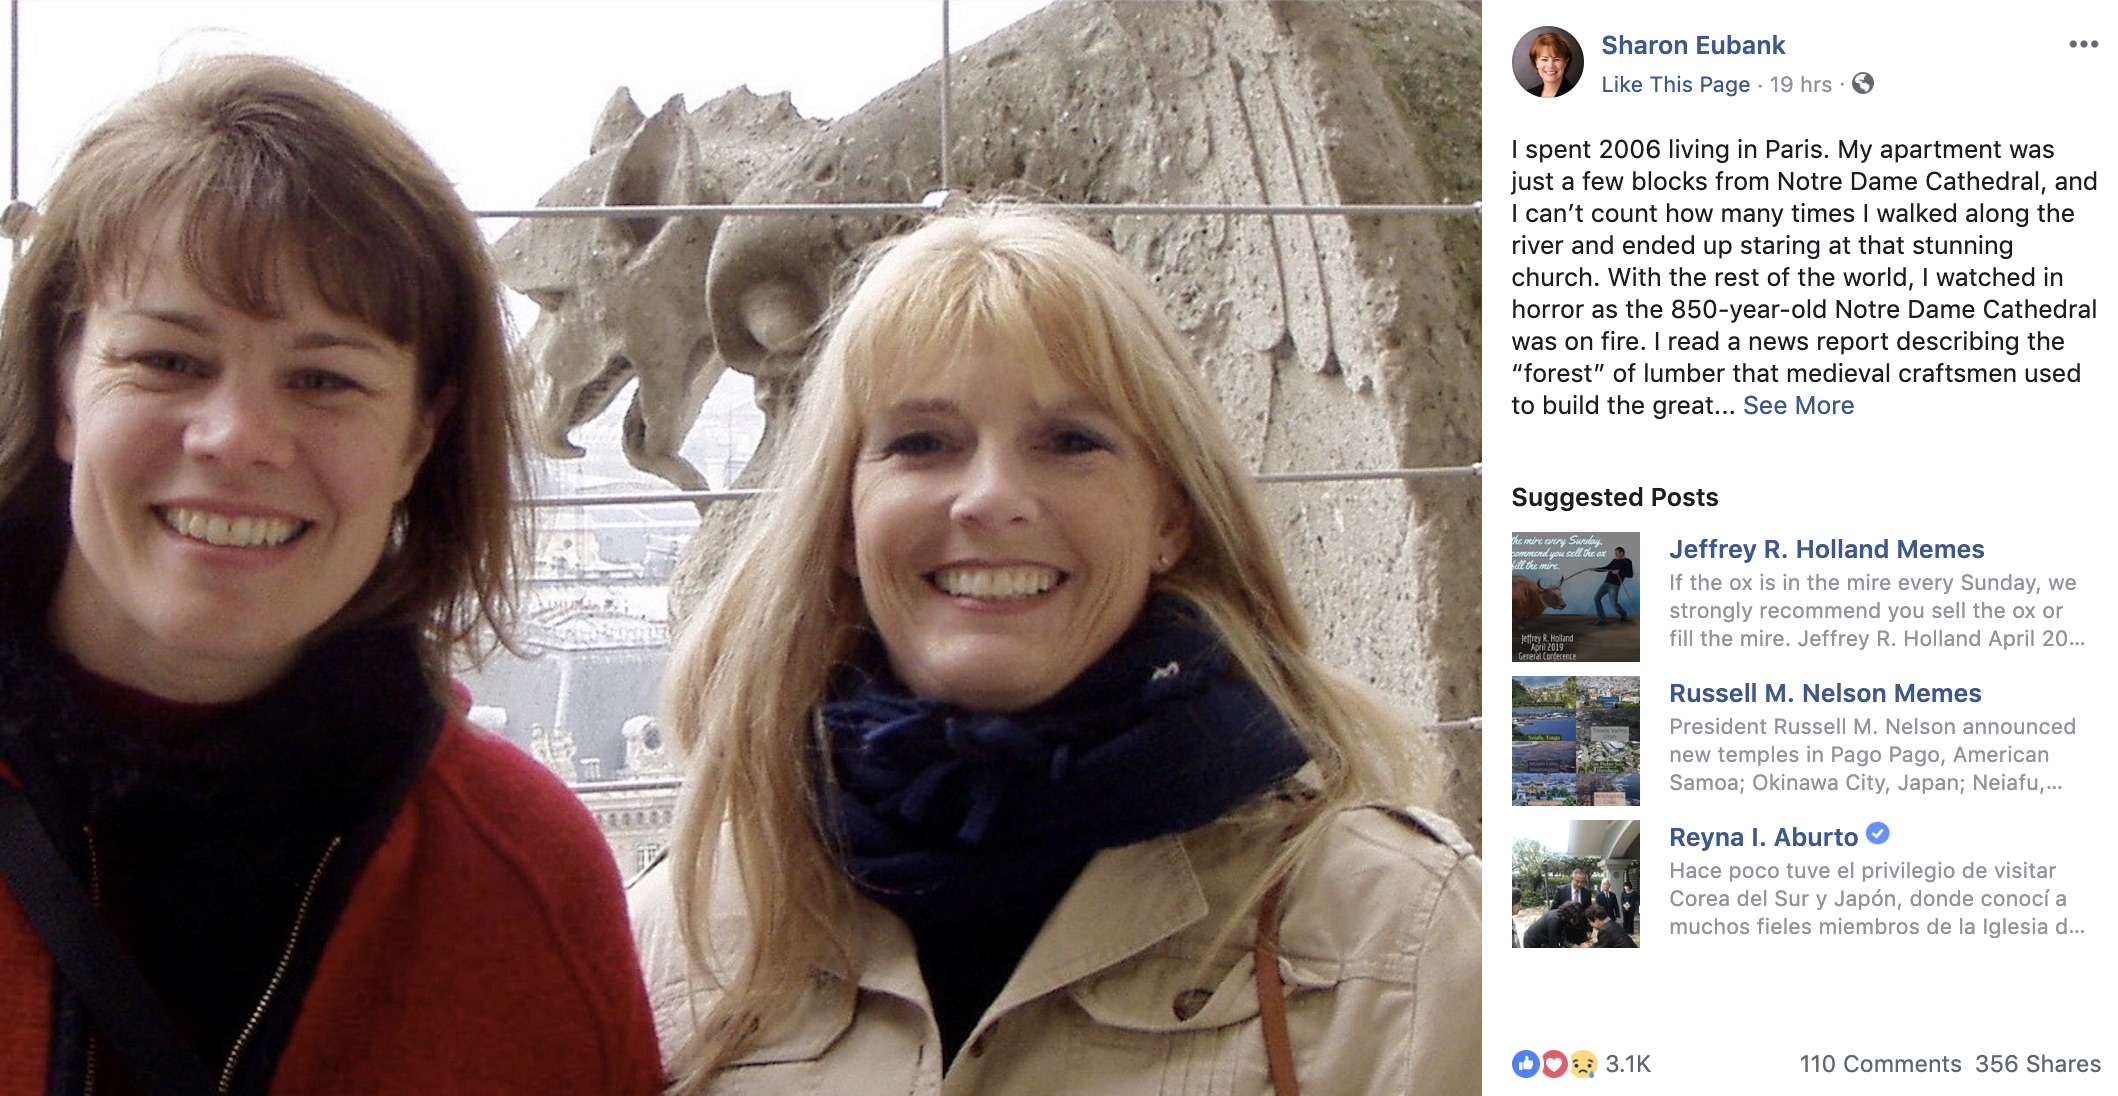 Sister Sharon Eubank shared a post on Facebook about the time she spent living in Paris in 2006.